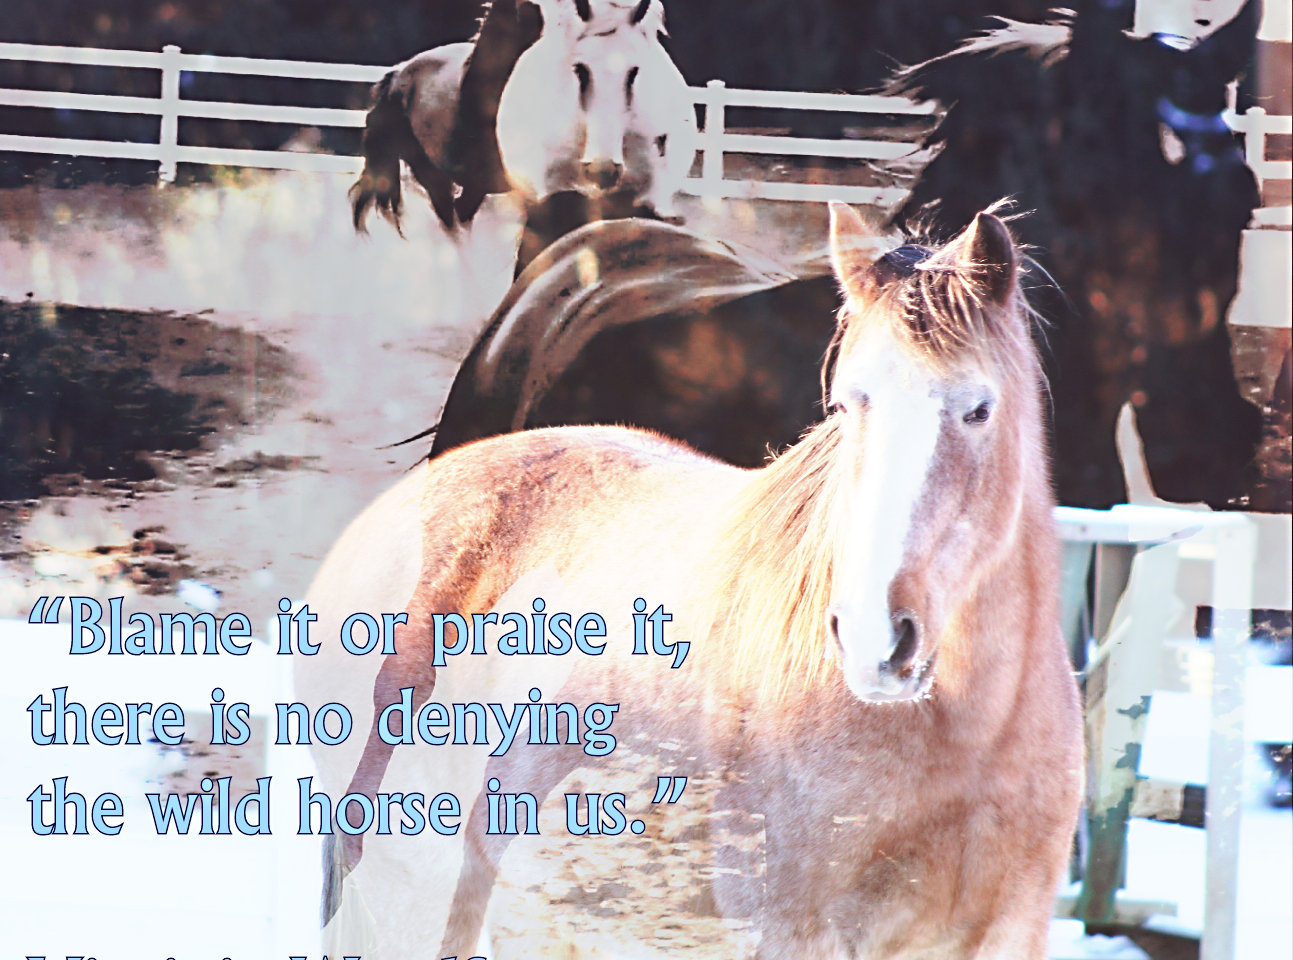 Wild Horse quote and meme